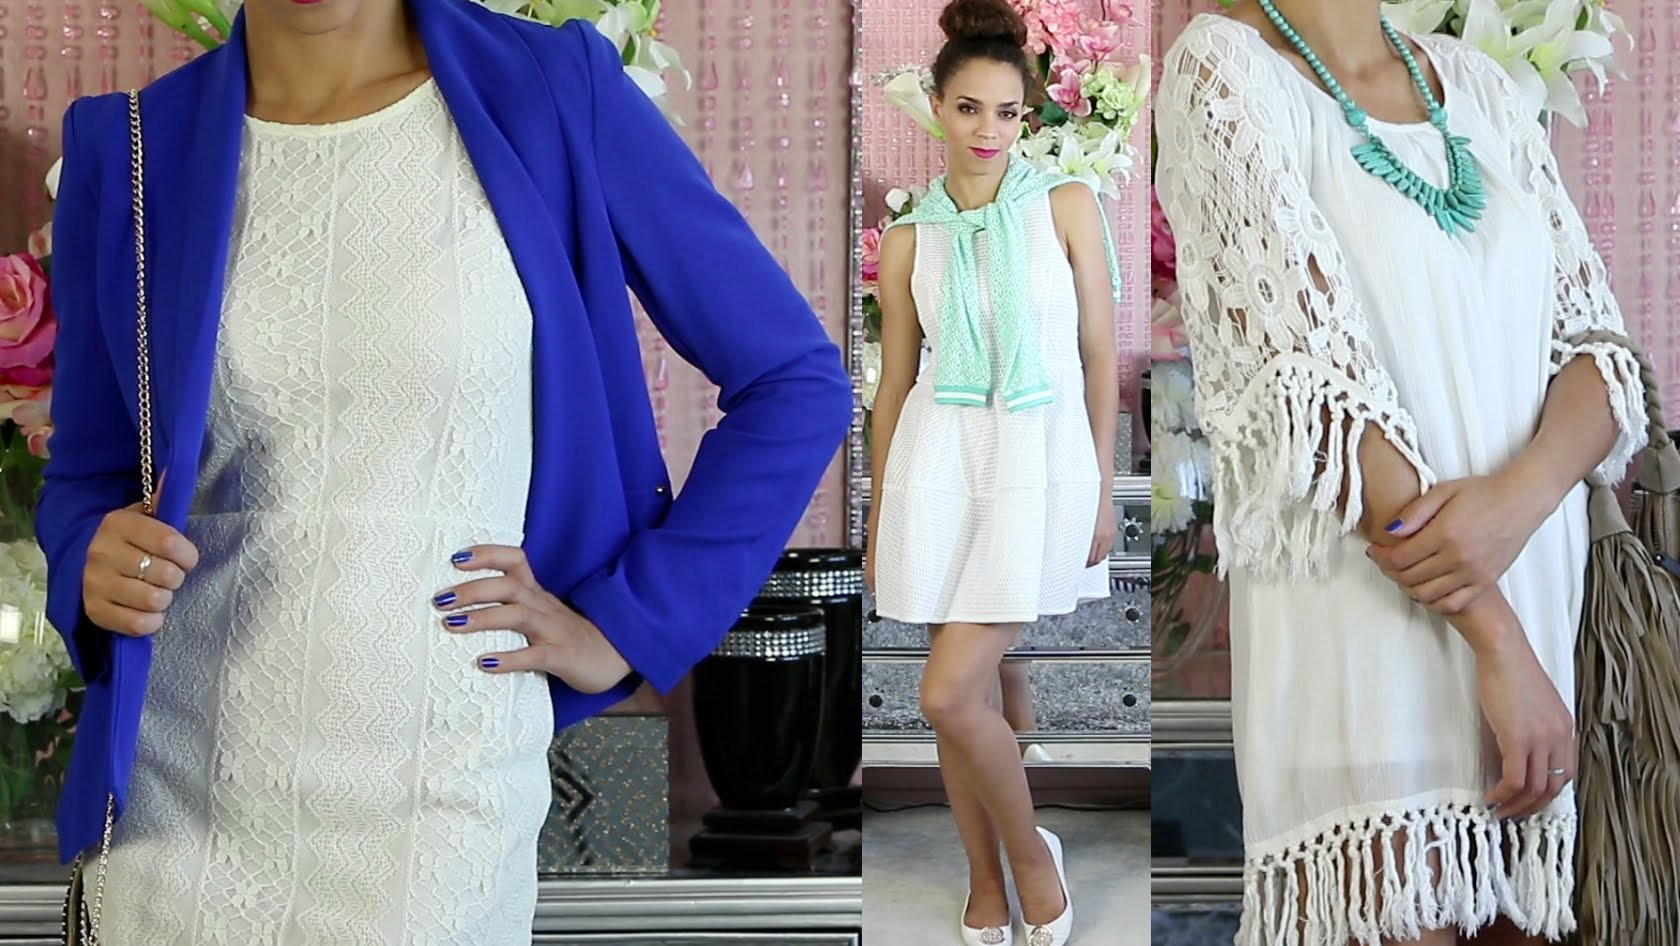 How to Wear a White Dress - Outfit Ideas & Summer Outfits!